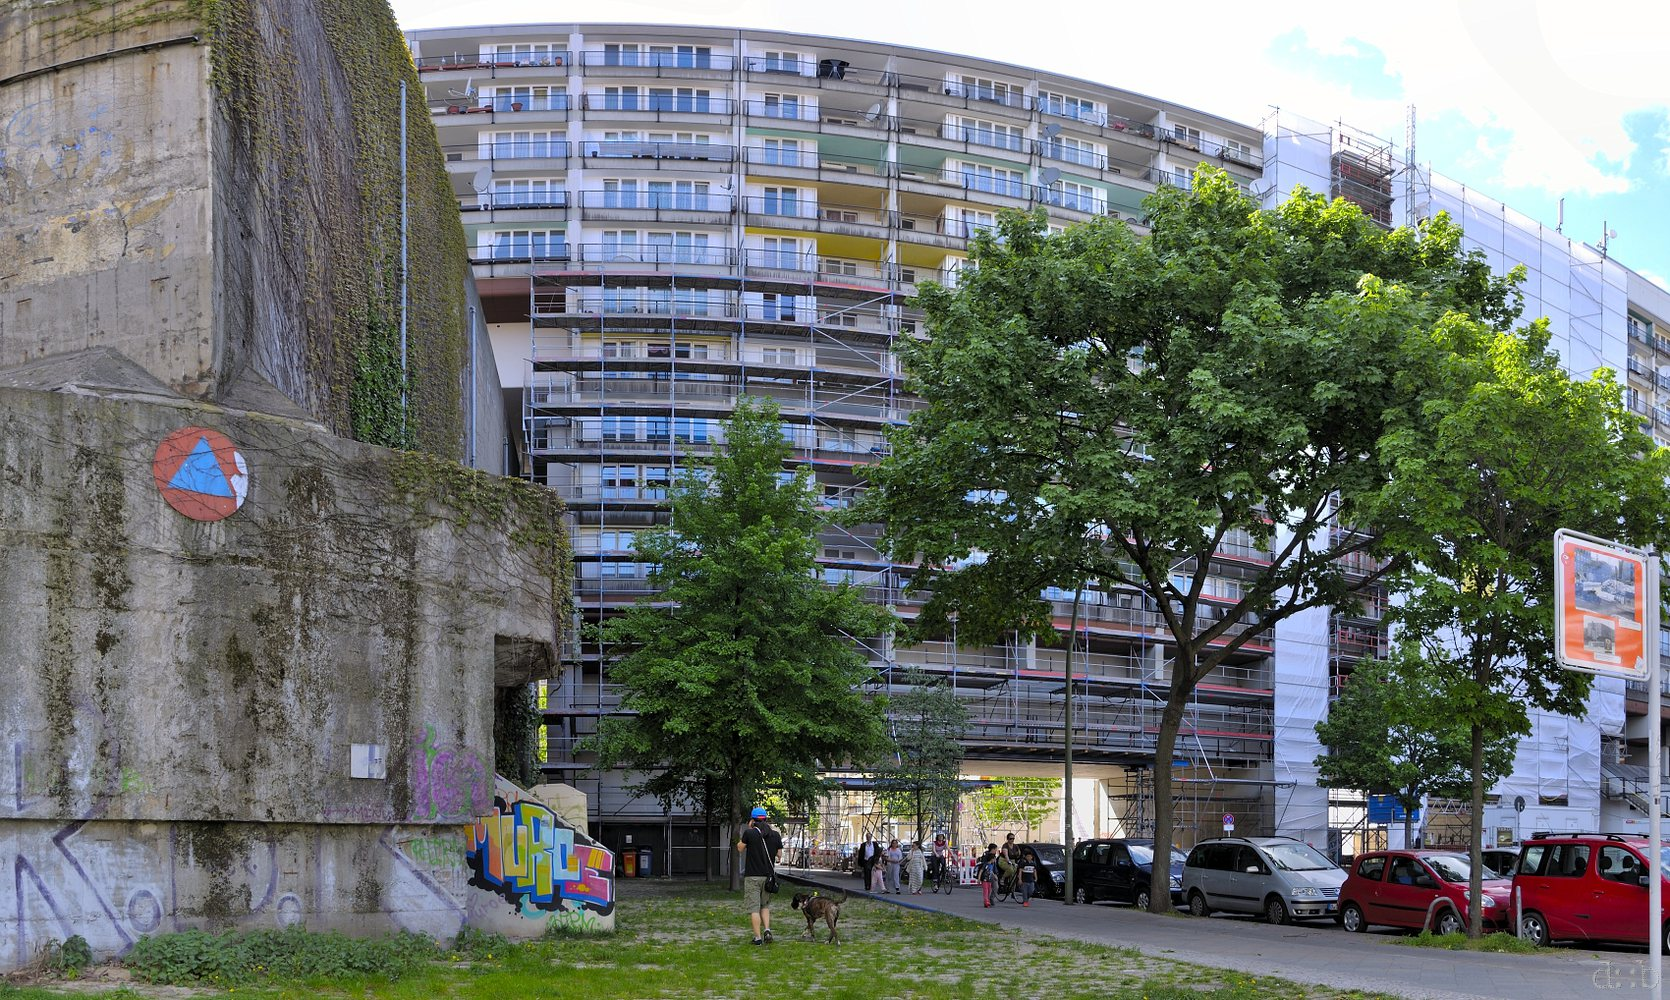 The Nazi bunker in Berlin Schöneberg, today enclosed by an appartment complex.